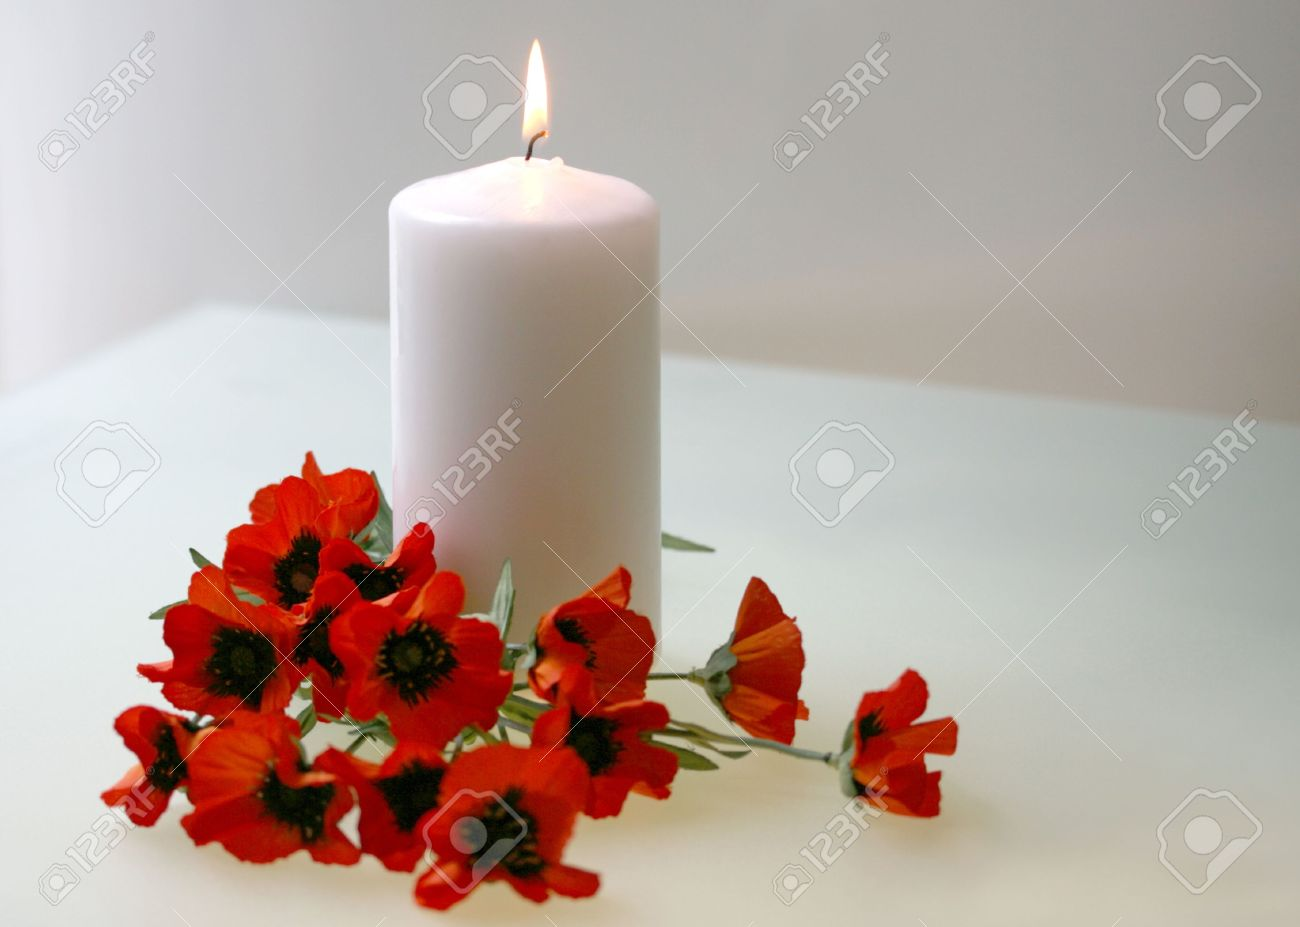 intentionally soft flanders poppies with candle to commemorate